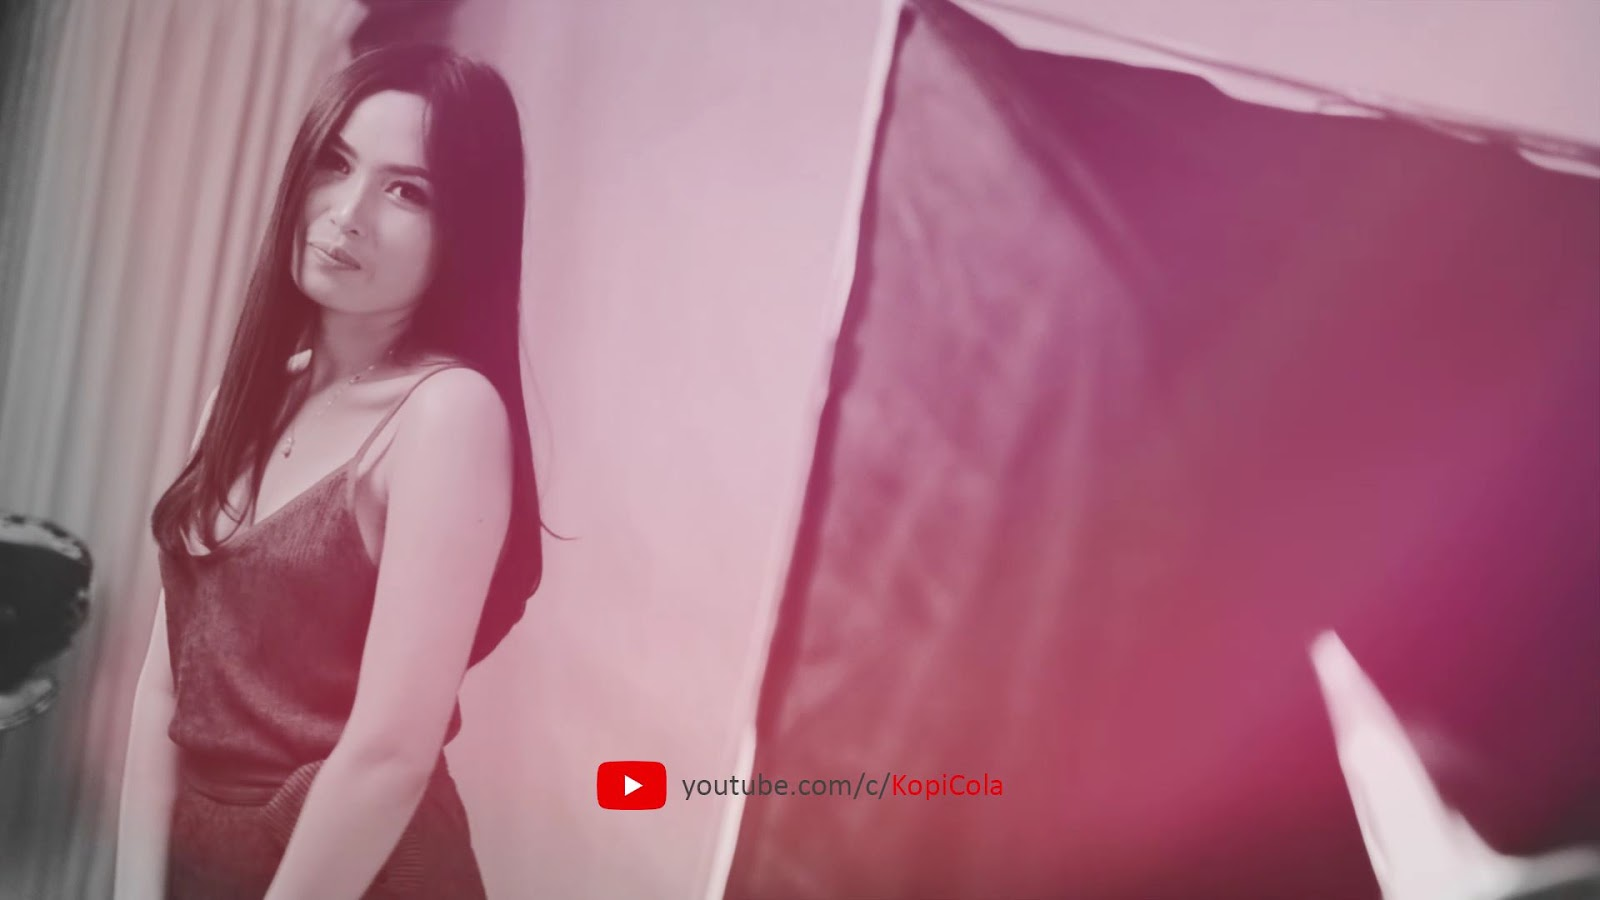 SPS #2 | Talent: Andrie Giegie - Bali Photoshoot